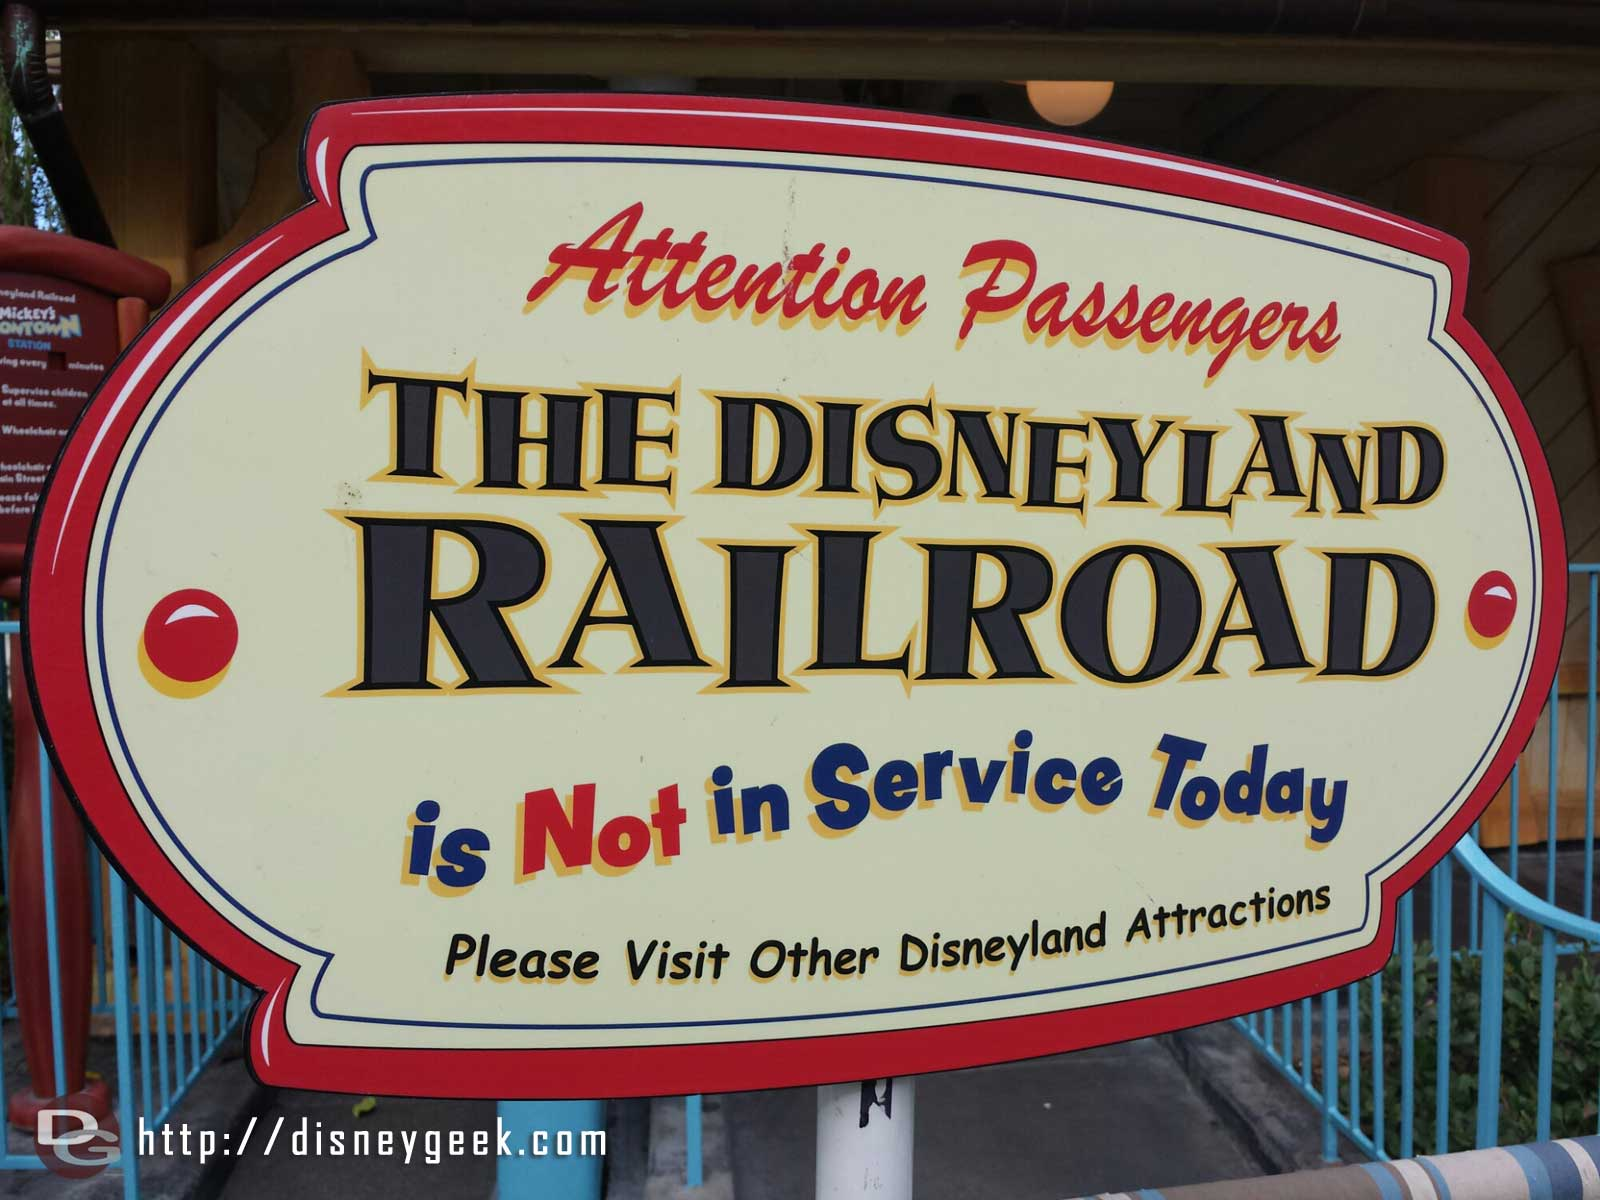 This week the #Disneyland Railroad has joined the list of closed attractions